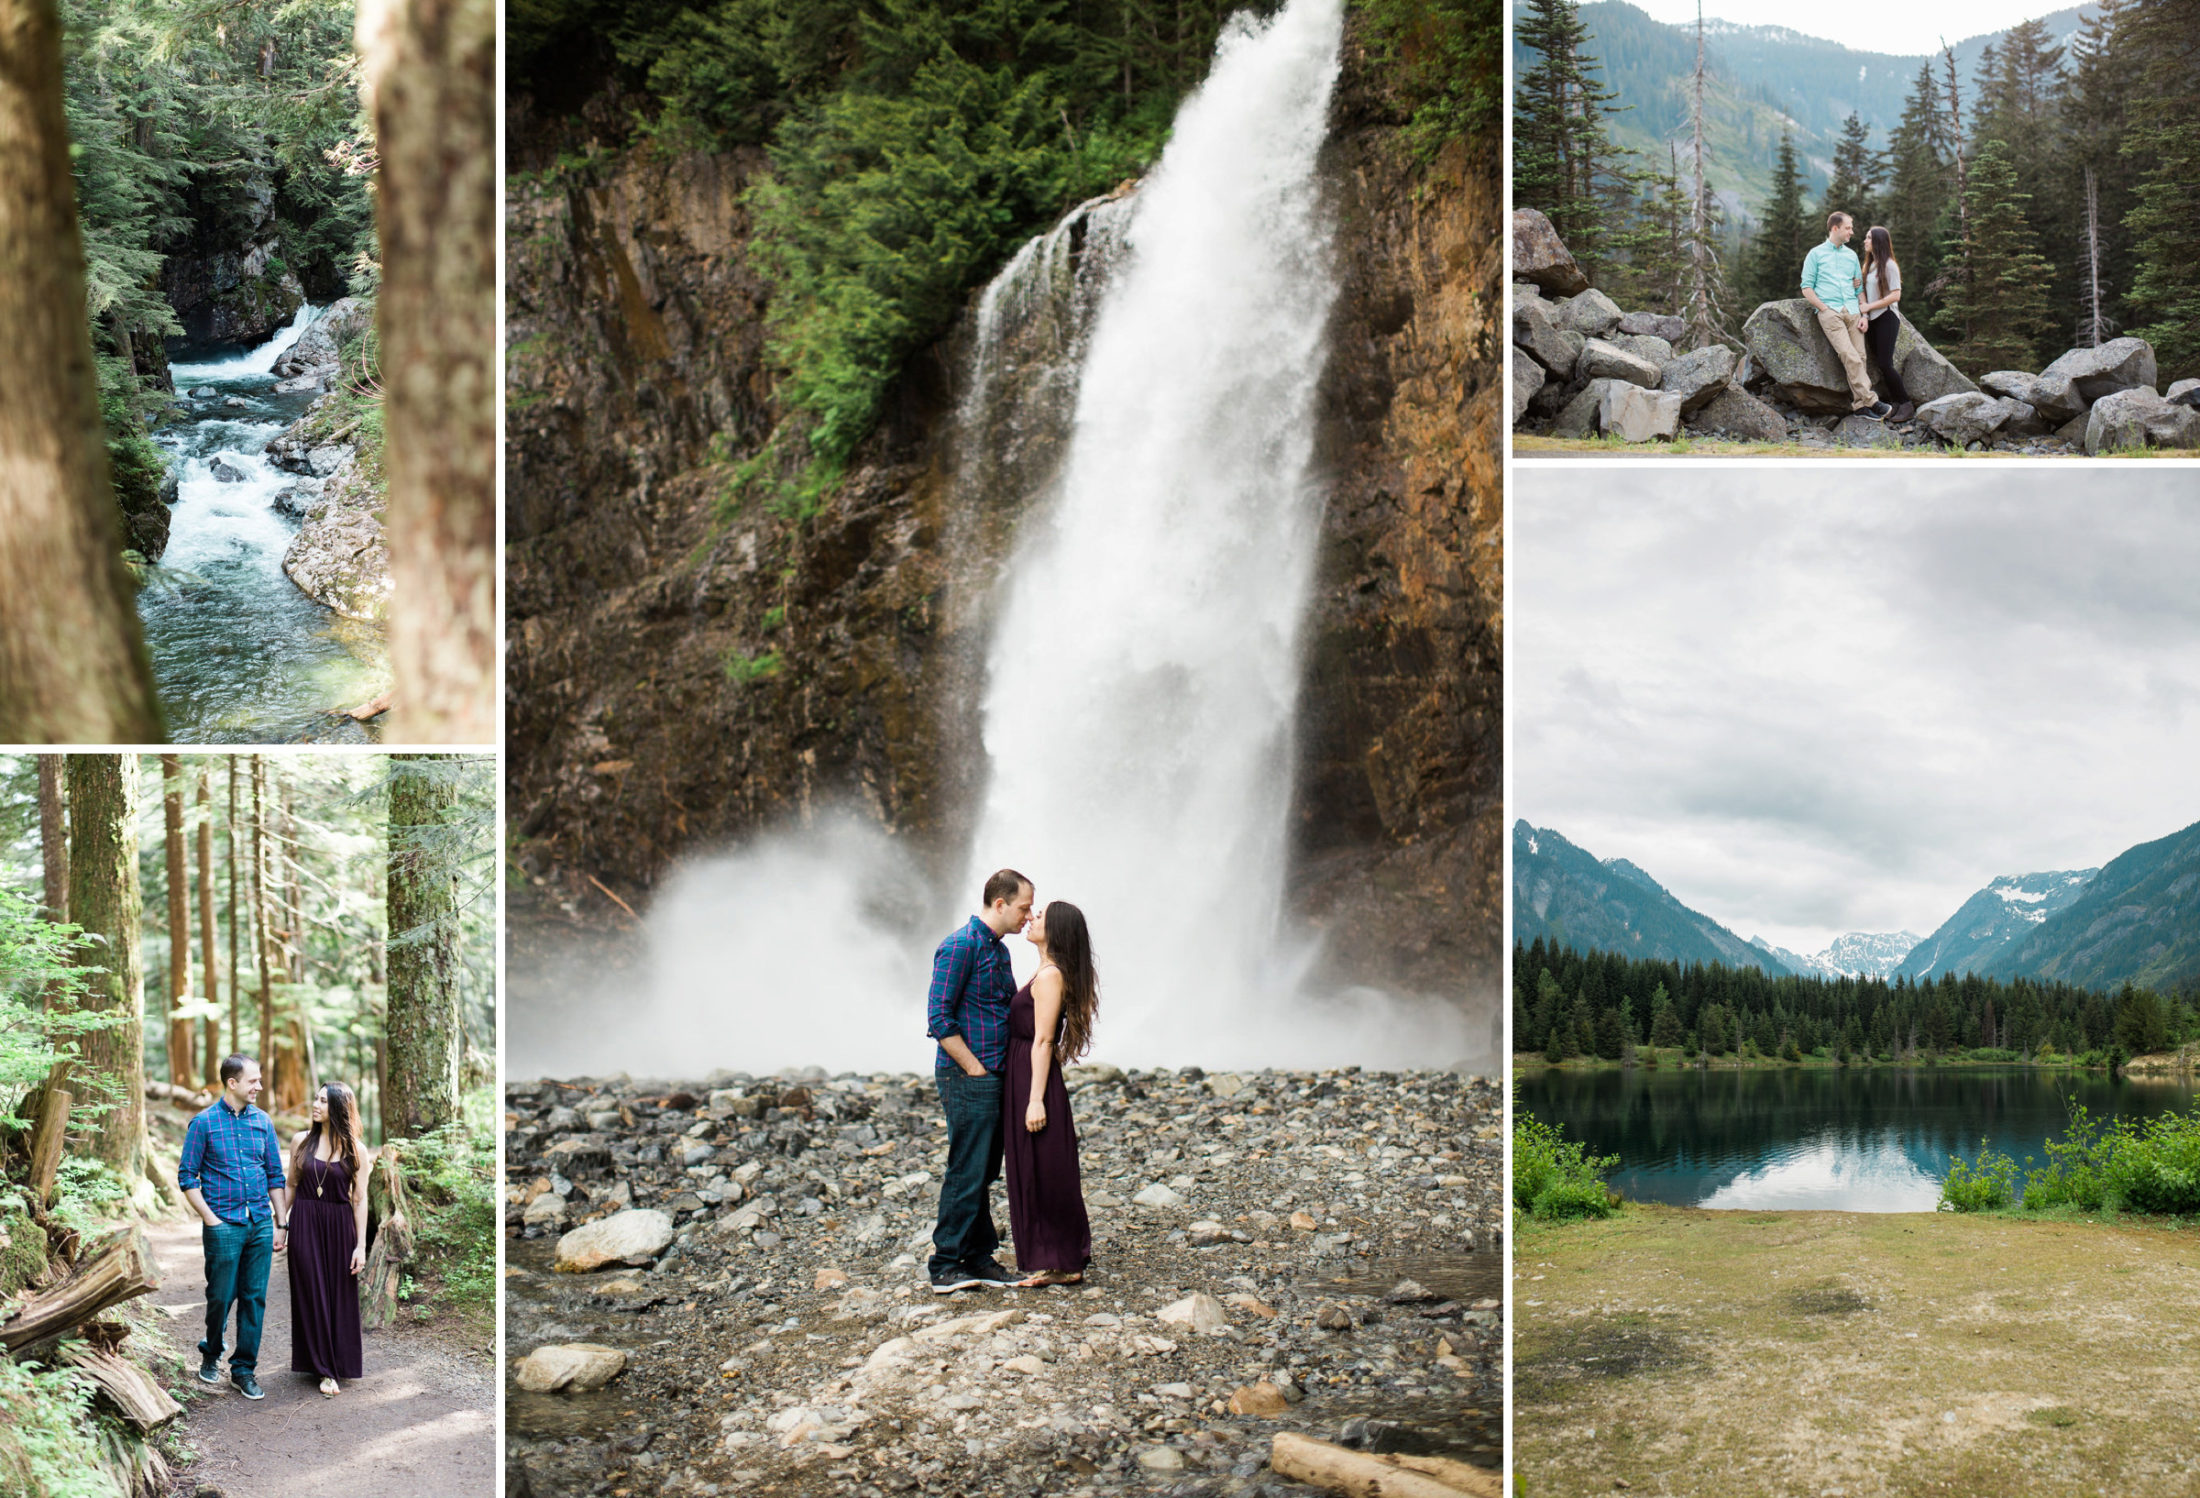 Best places to elope near Seattle. Franklin Falls, Gold Creek Pond hiking trail. Waterfall Snoqualmie Pass adventure wedding photography.